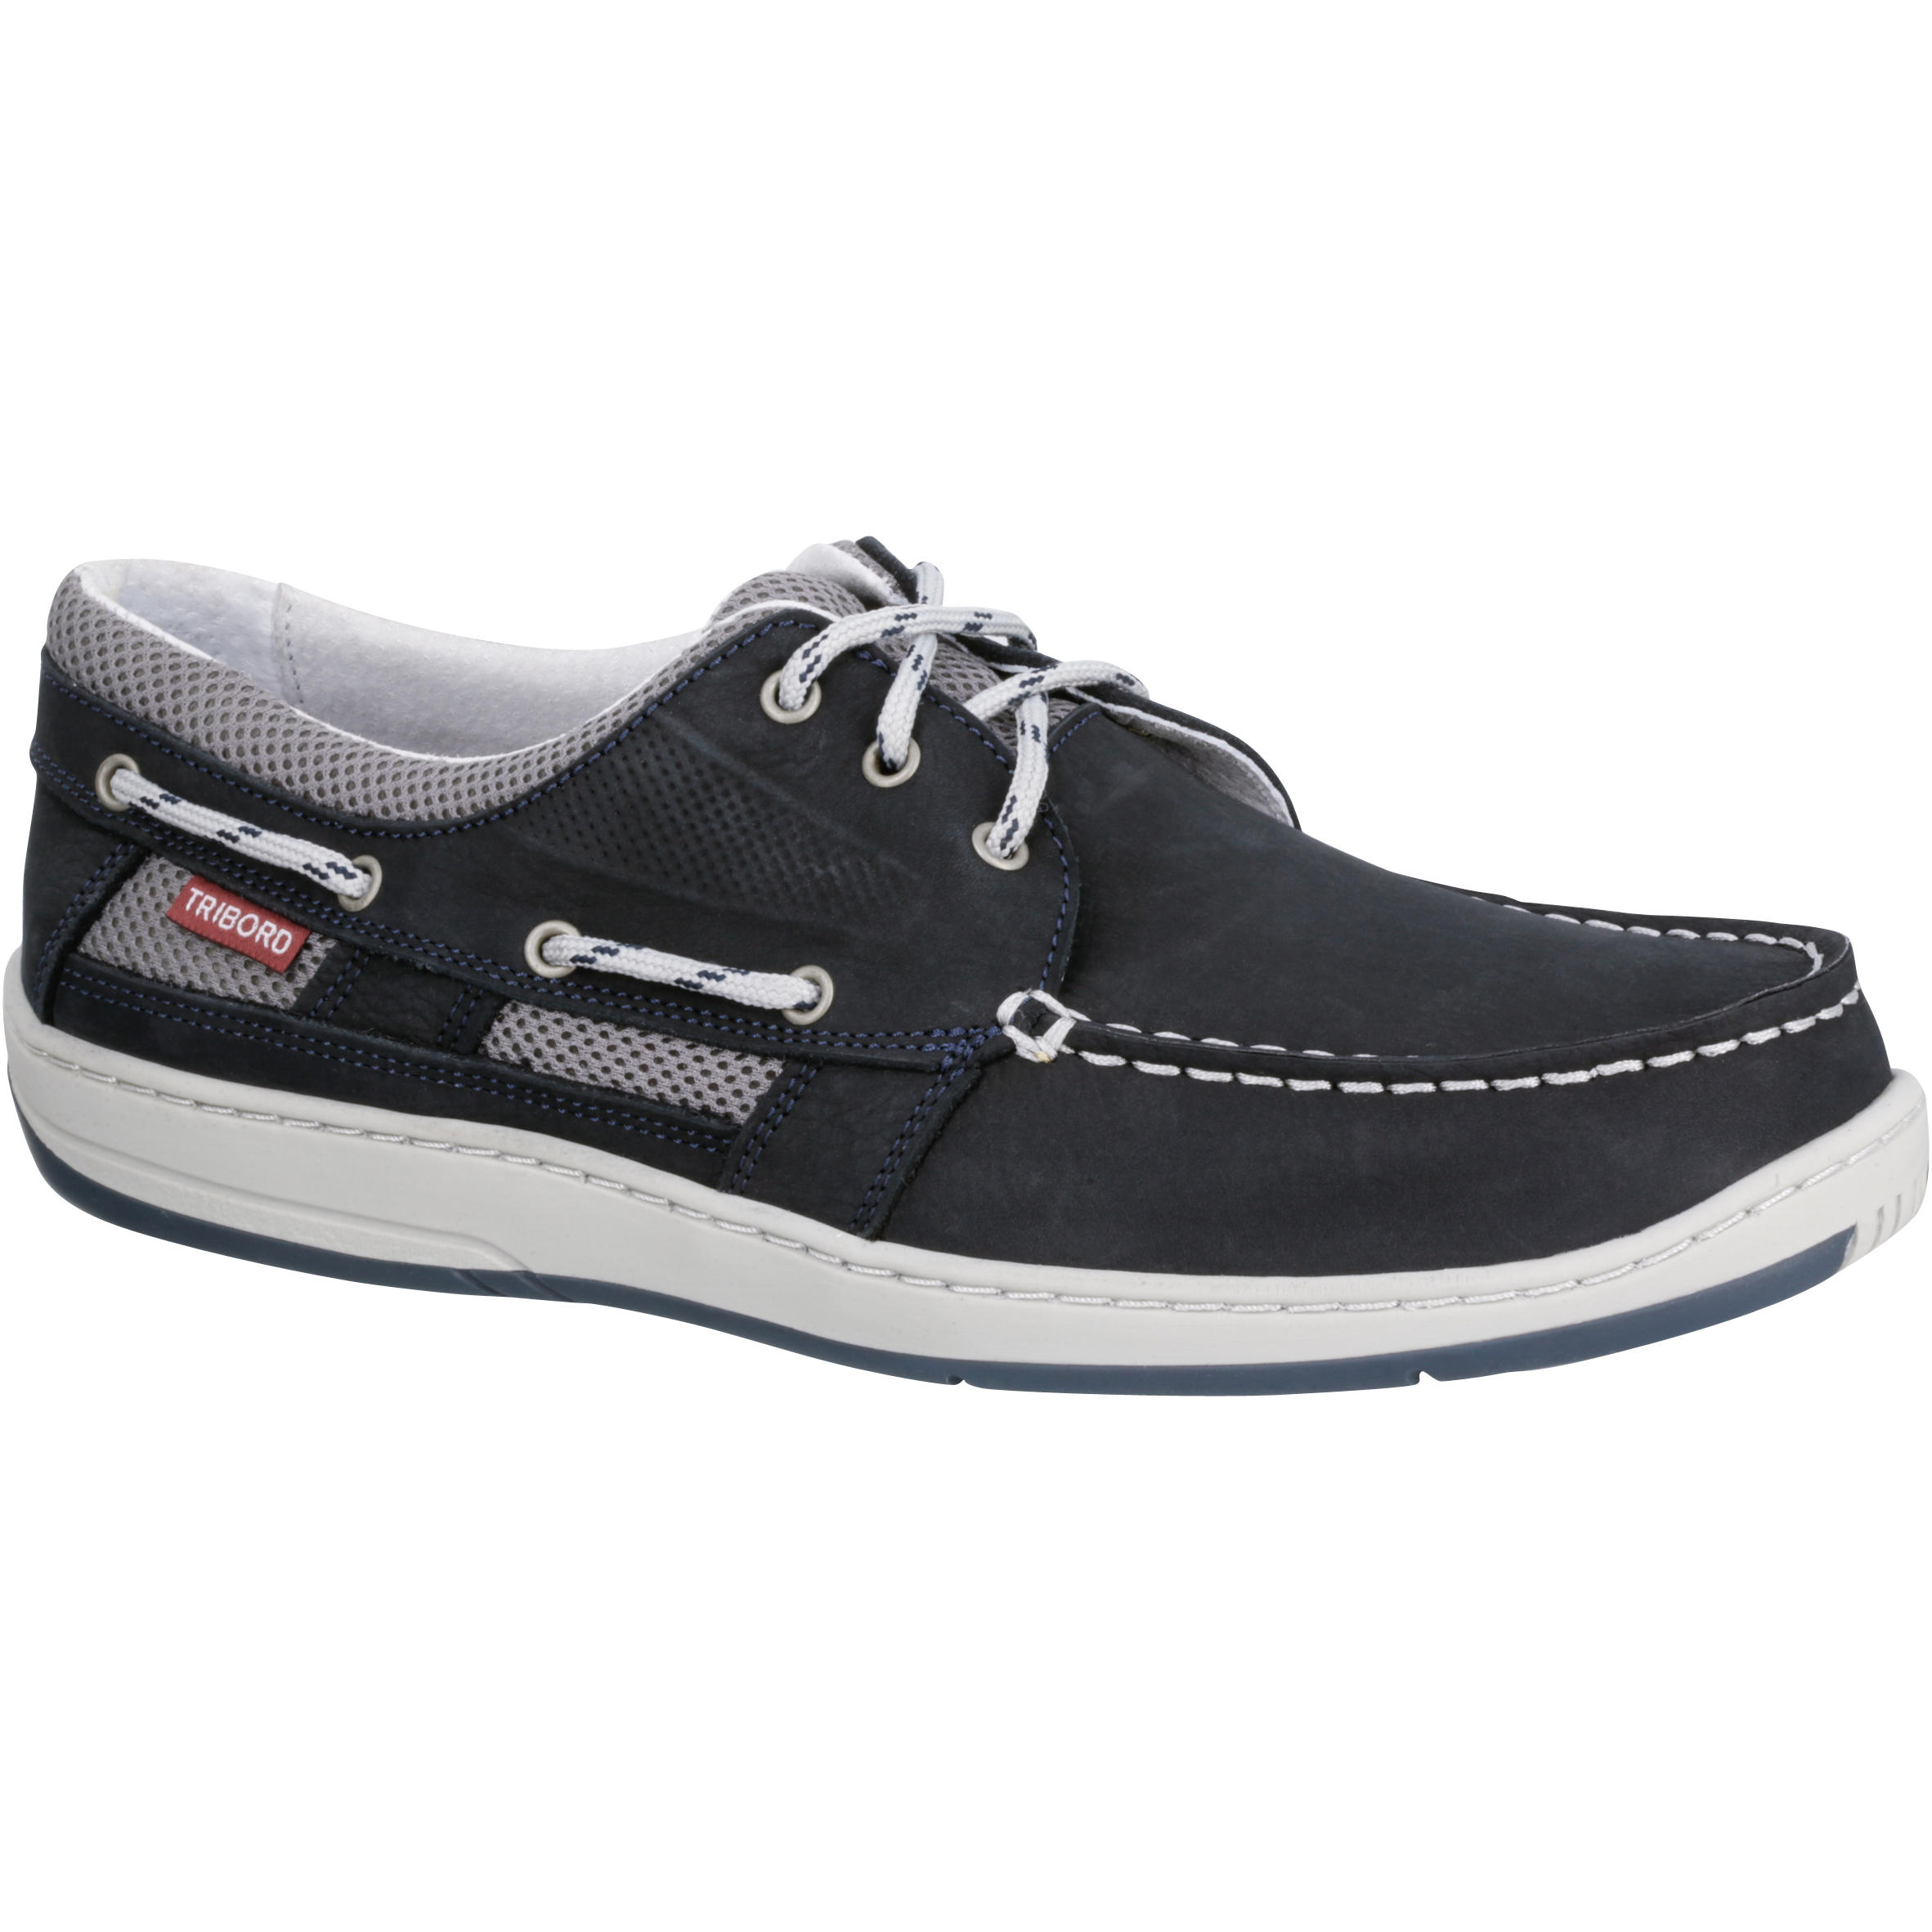 Clipper Men's Leather Boat Shoes - Navy Blue